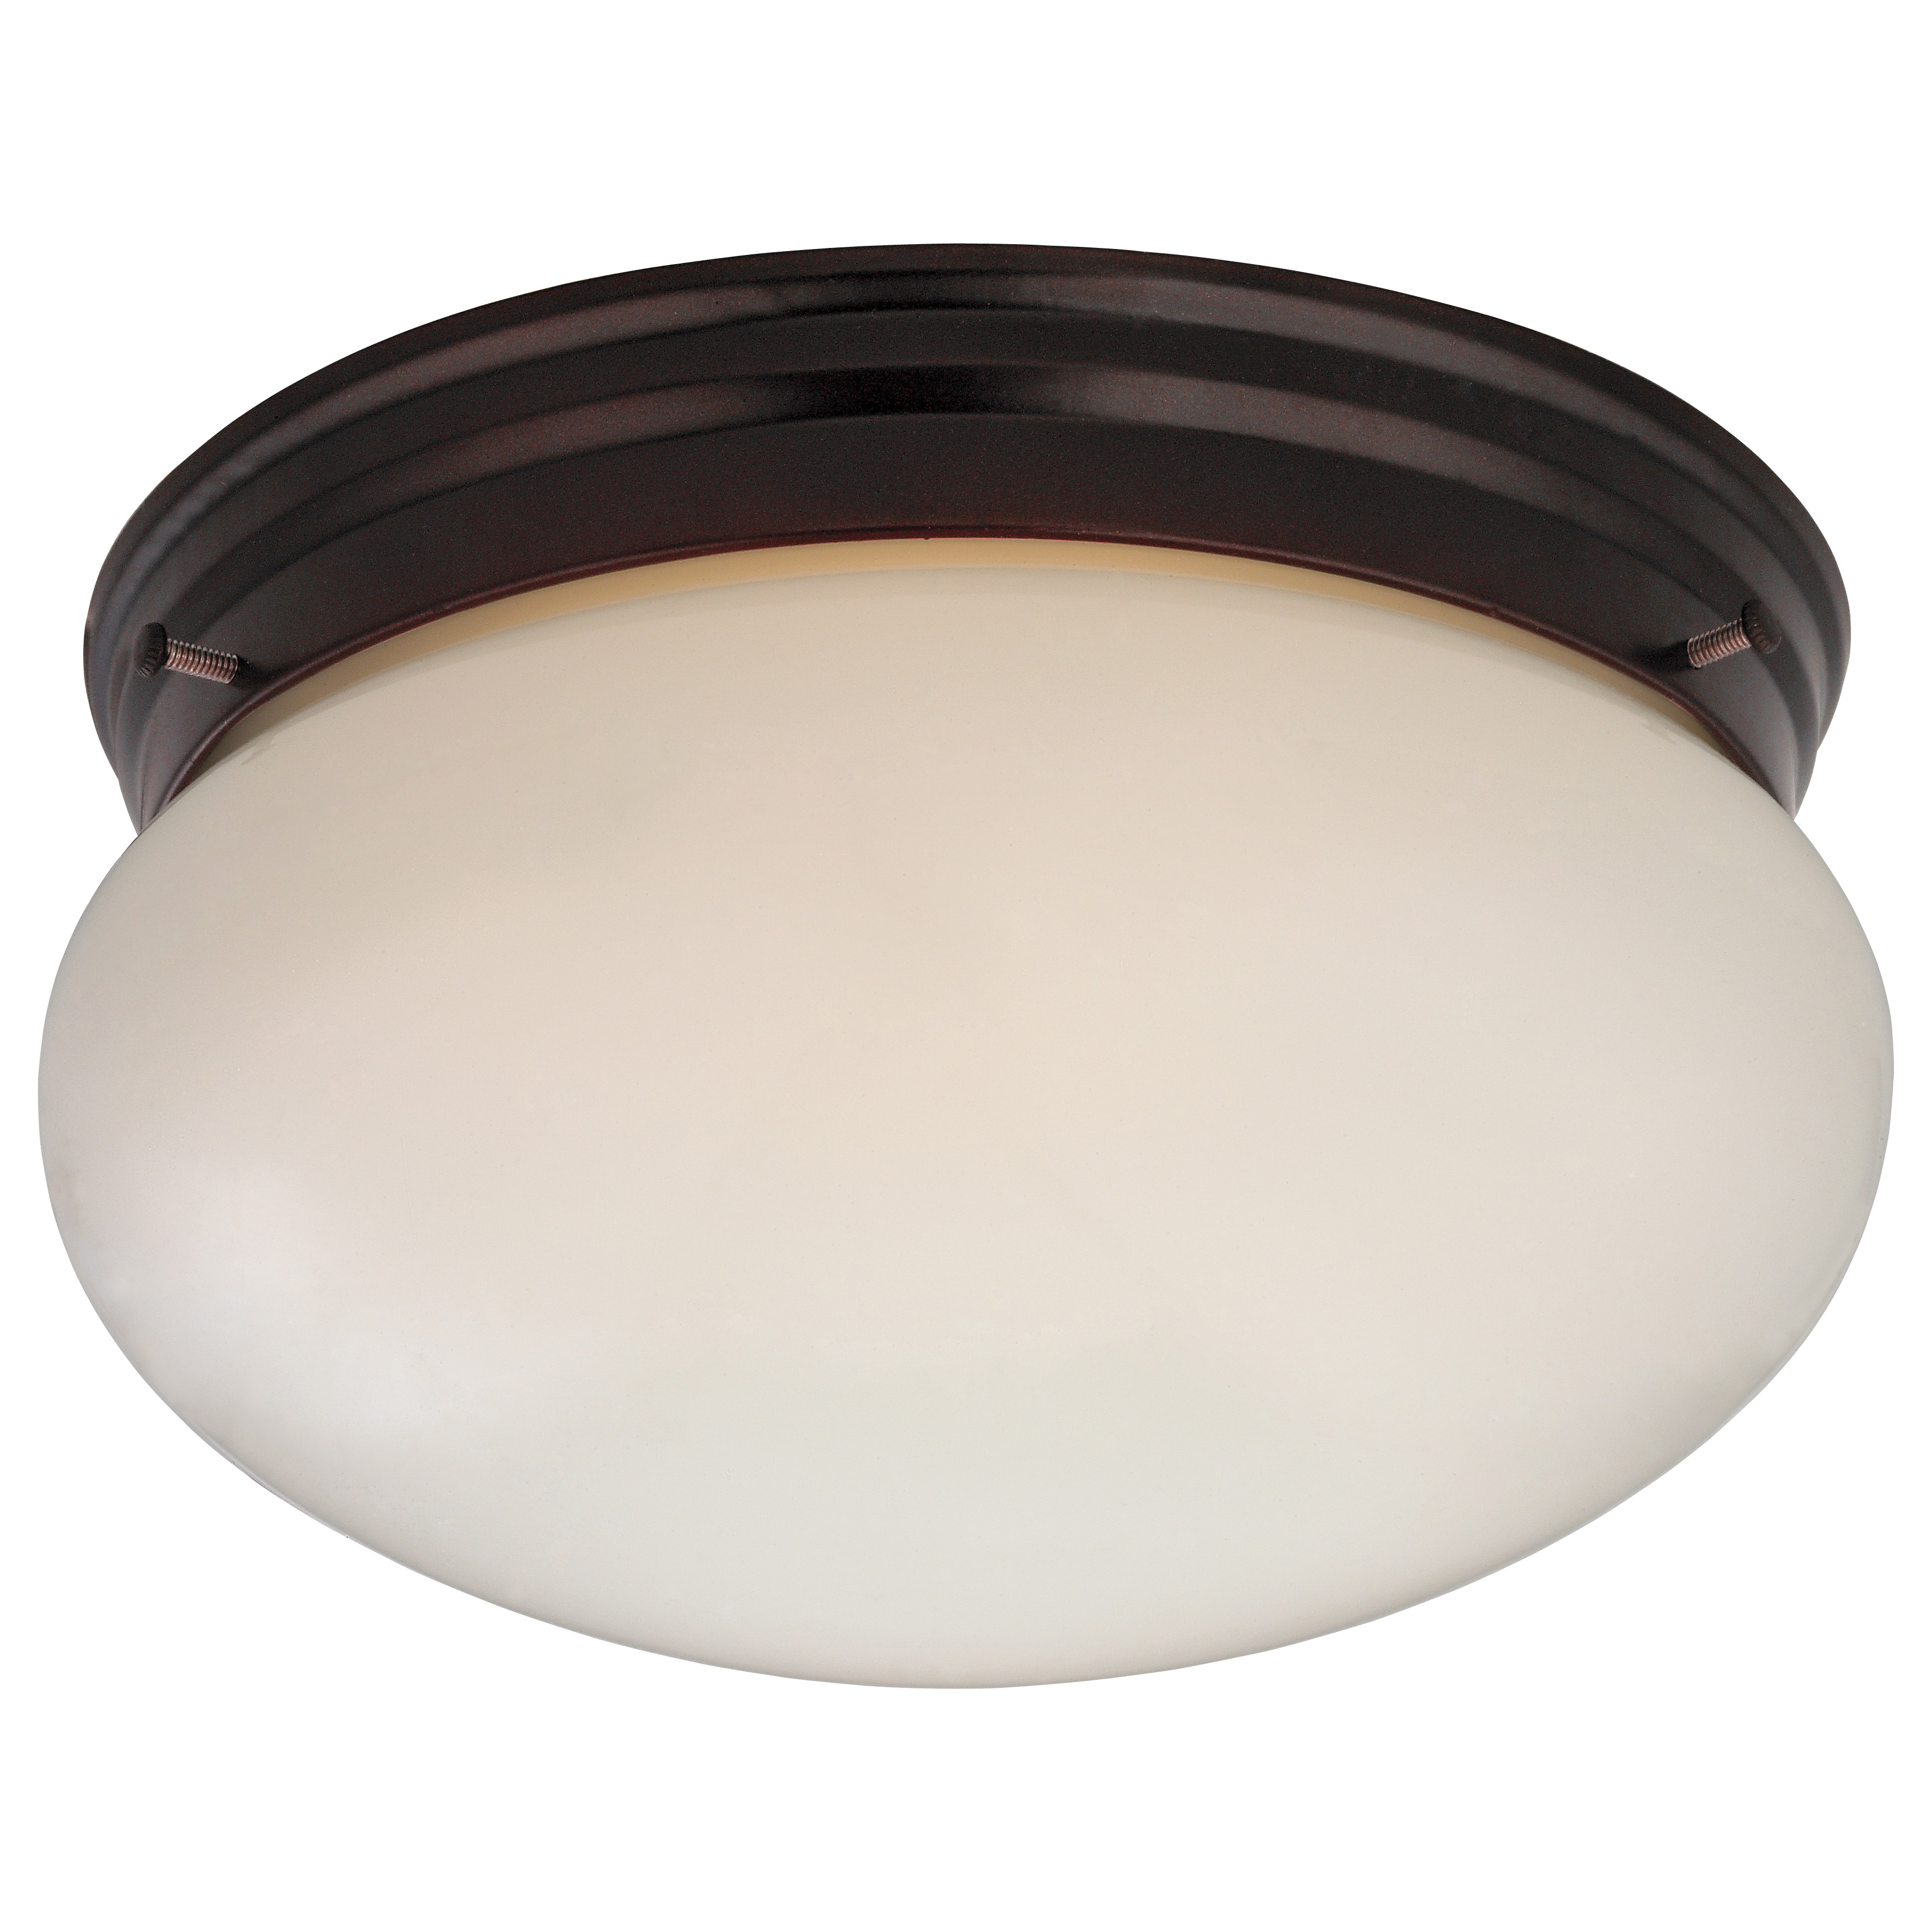 Picture of Boston Harbor F14BB02-8005-ORB Ceiling Light Fixture, 2-Lamp, CFL Lamp, Oil-Rubbed Bronze Fixture